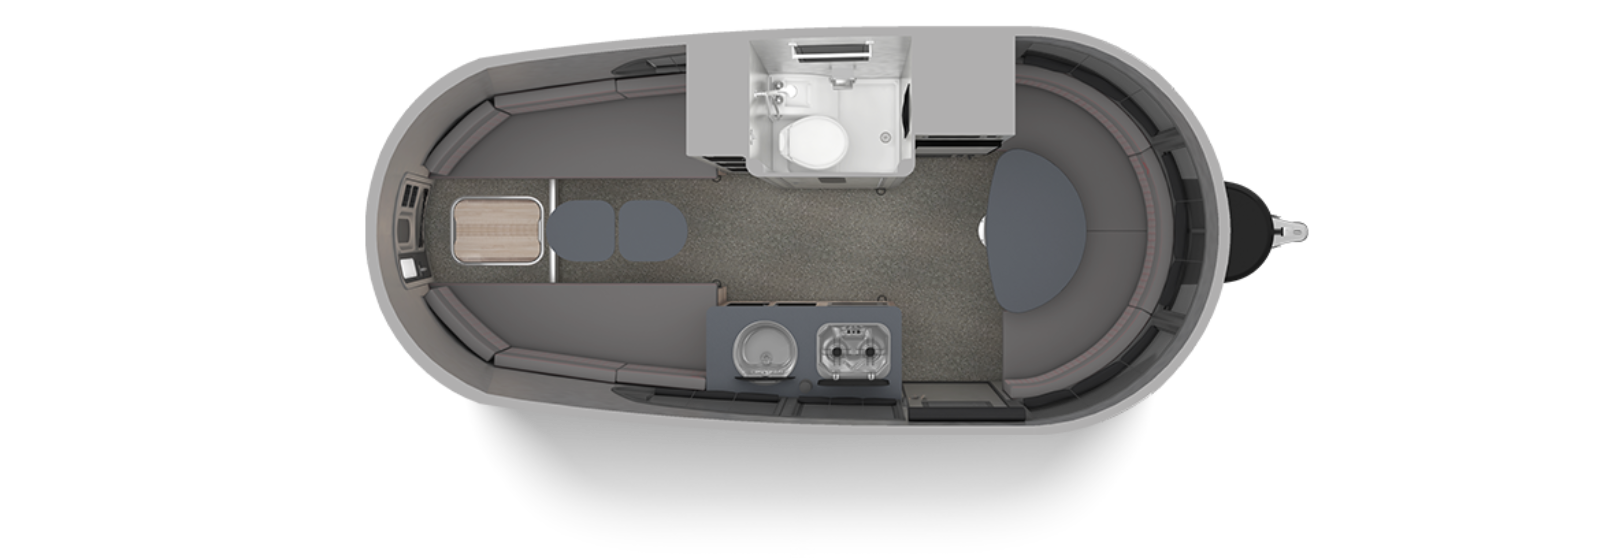 Airstream-Basecamp-20-Red-Rock-Floor-Plan-v2